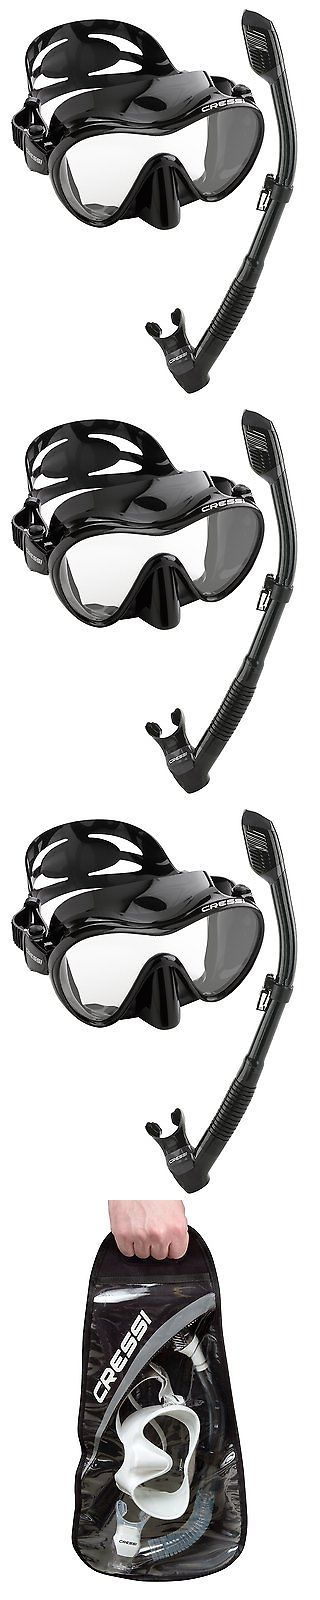 Snorkels and Sets 71162: Cressi Scuba Diving Snorkeling Freediving Mask Snorkel Set Black -> BUY IT NOW ONLY: $50.36 on eBay!